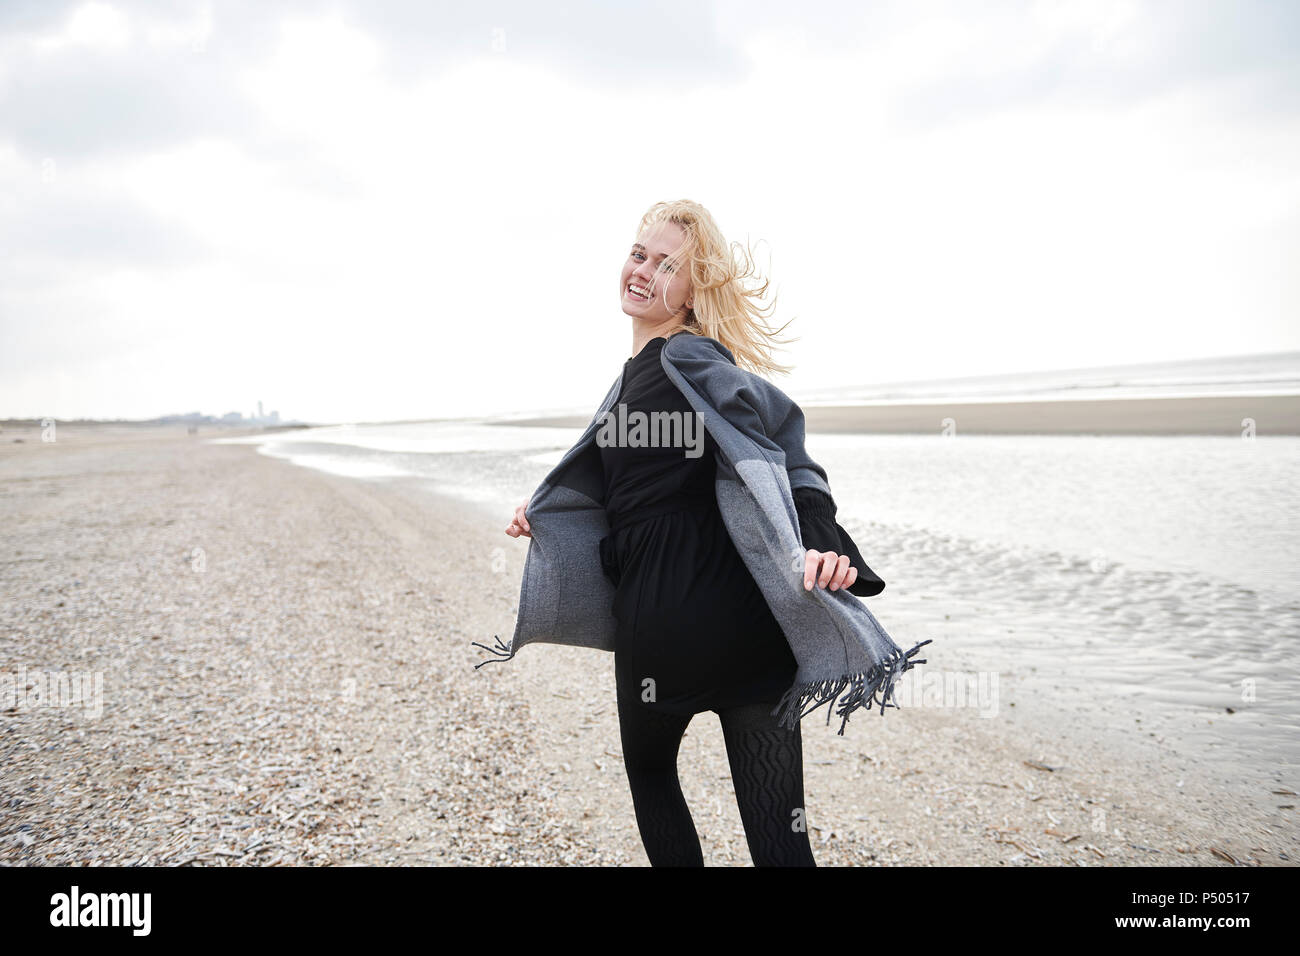 Netherlands, portrait of blond young woman running on the beach - Stock Image